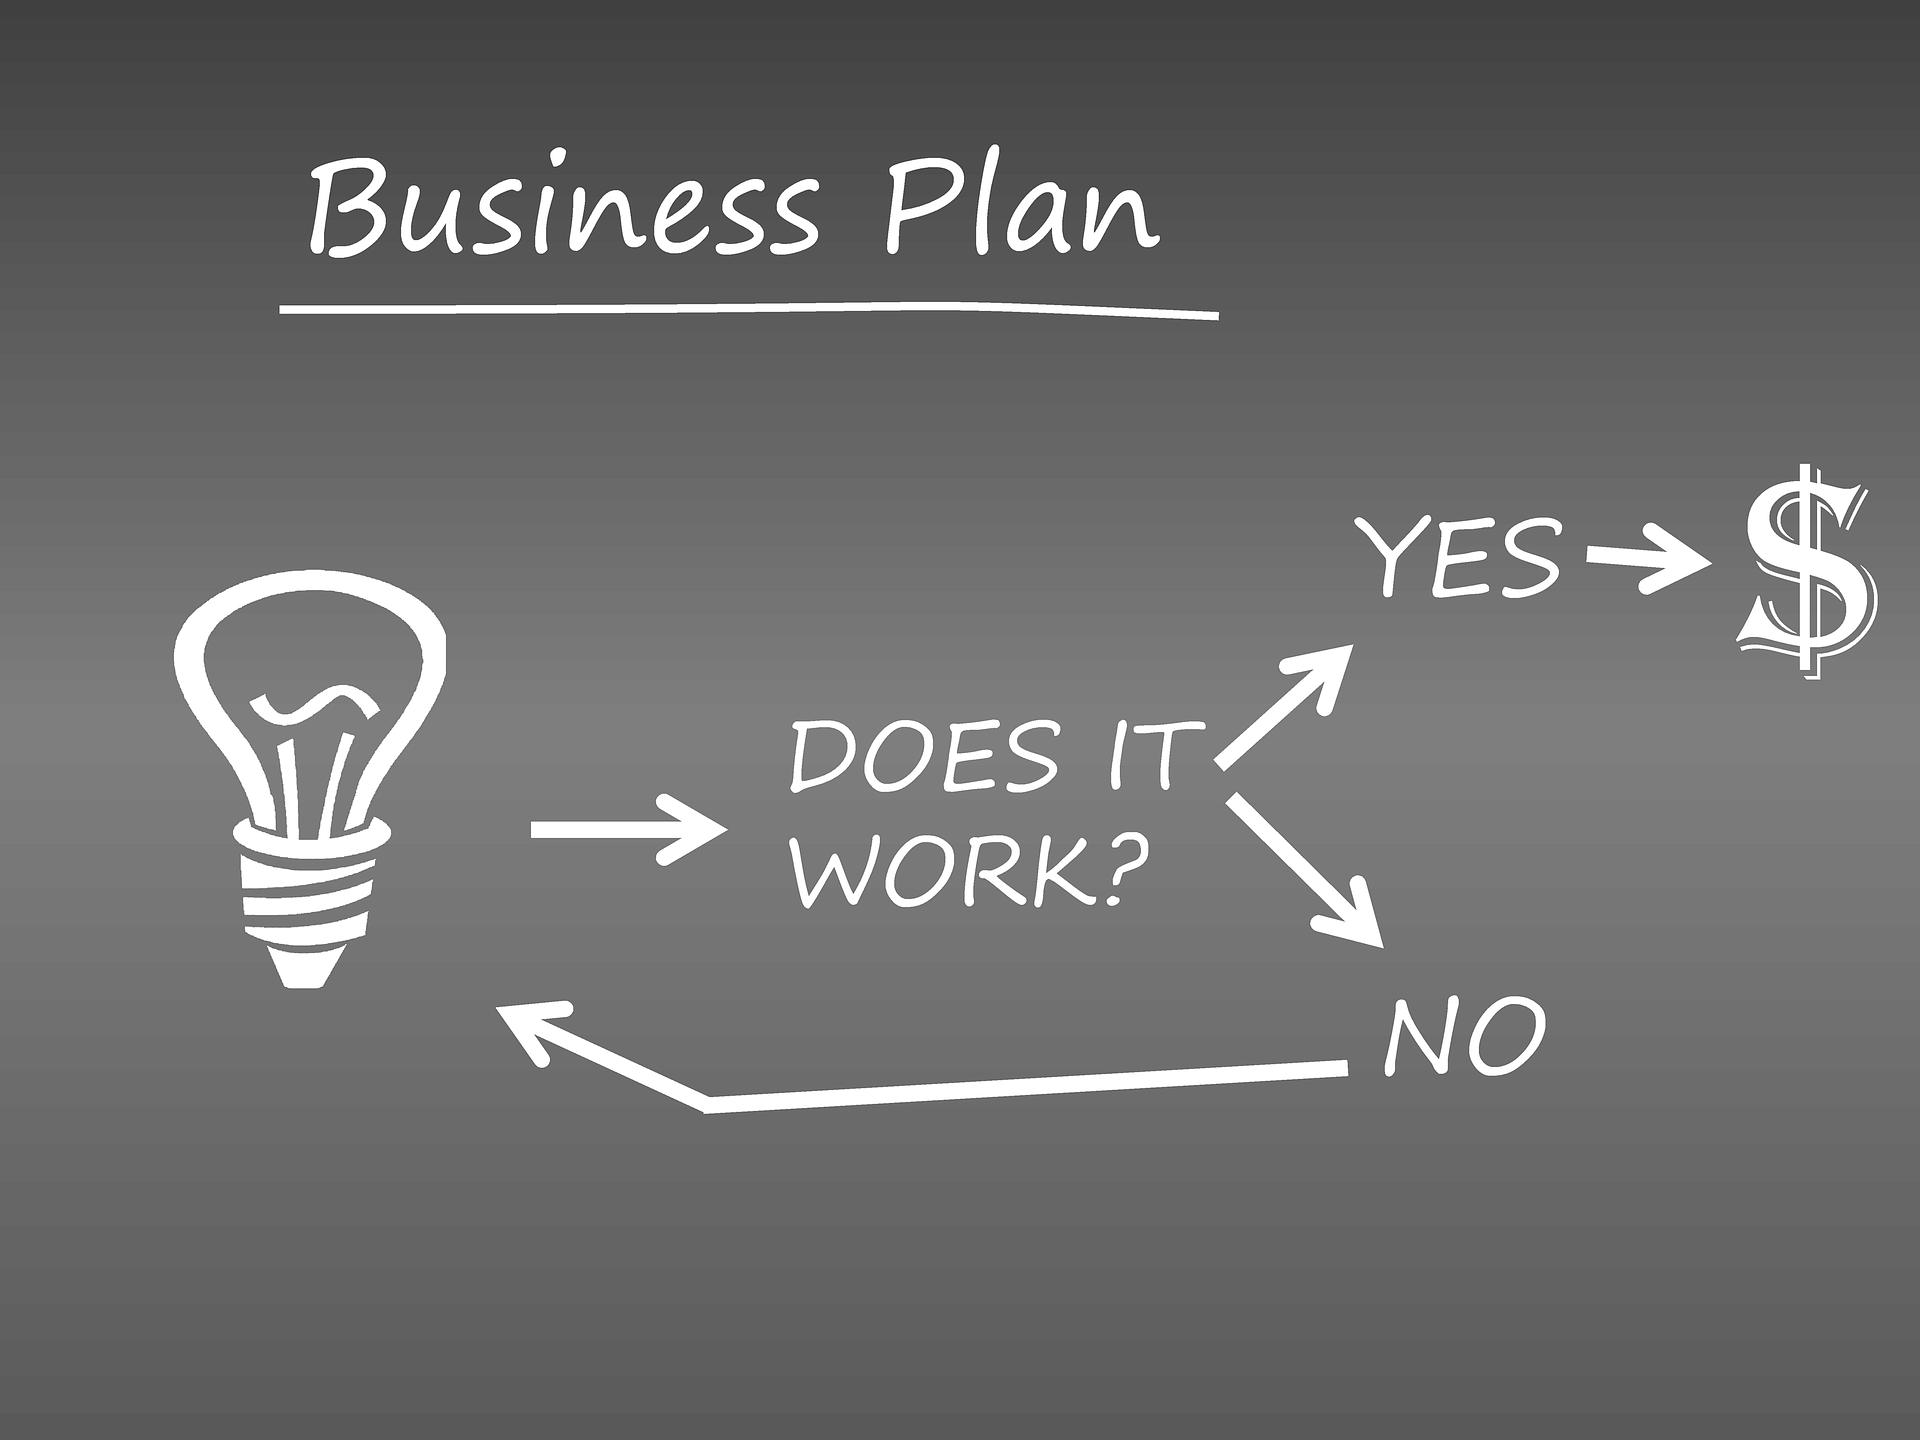 image of business plan graphic for illustration purposes only